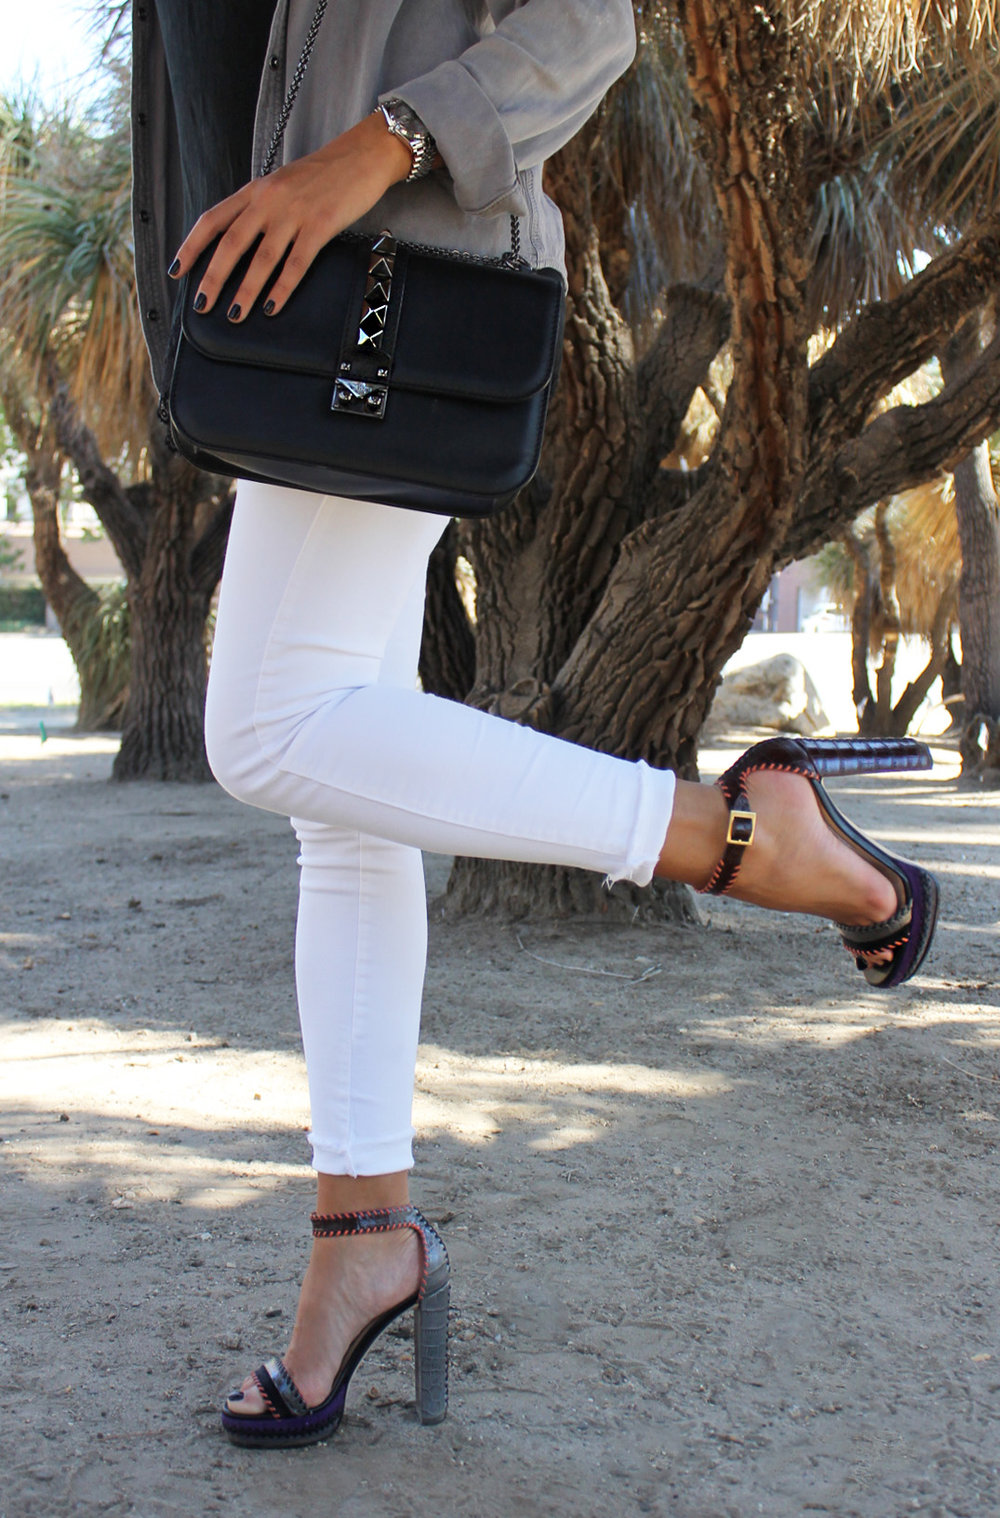 mel-ronnie-jimmy-choo-game-grey-top-lace-cami-black-white-denim-jeans-outfit-valentino-rockstud-bag-4.jpg